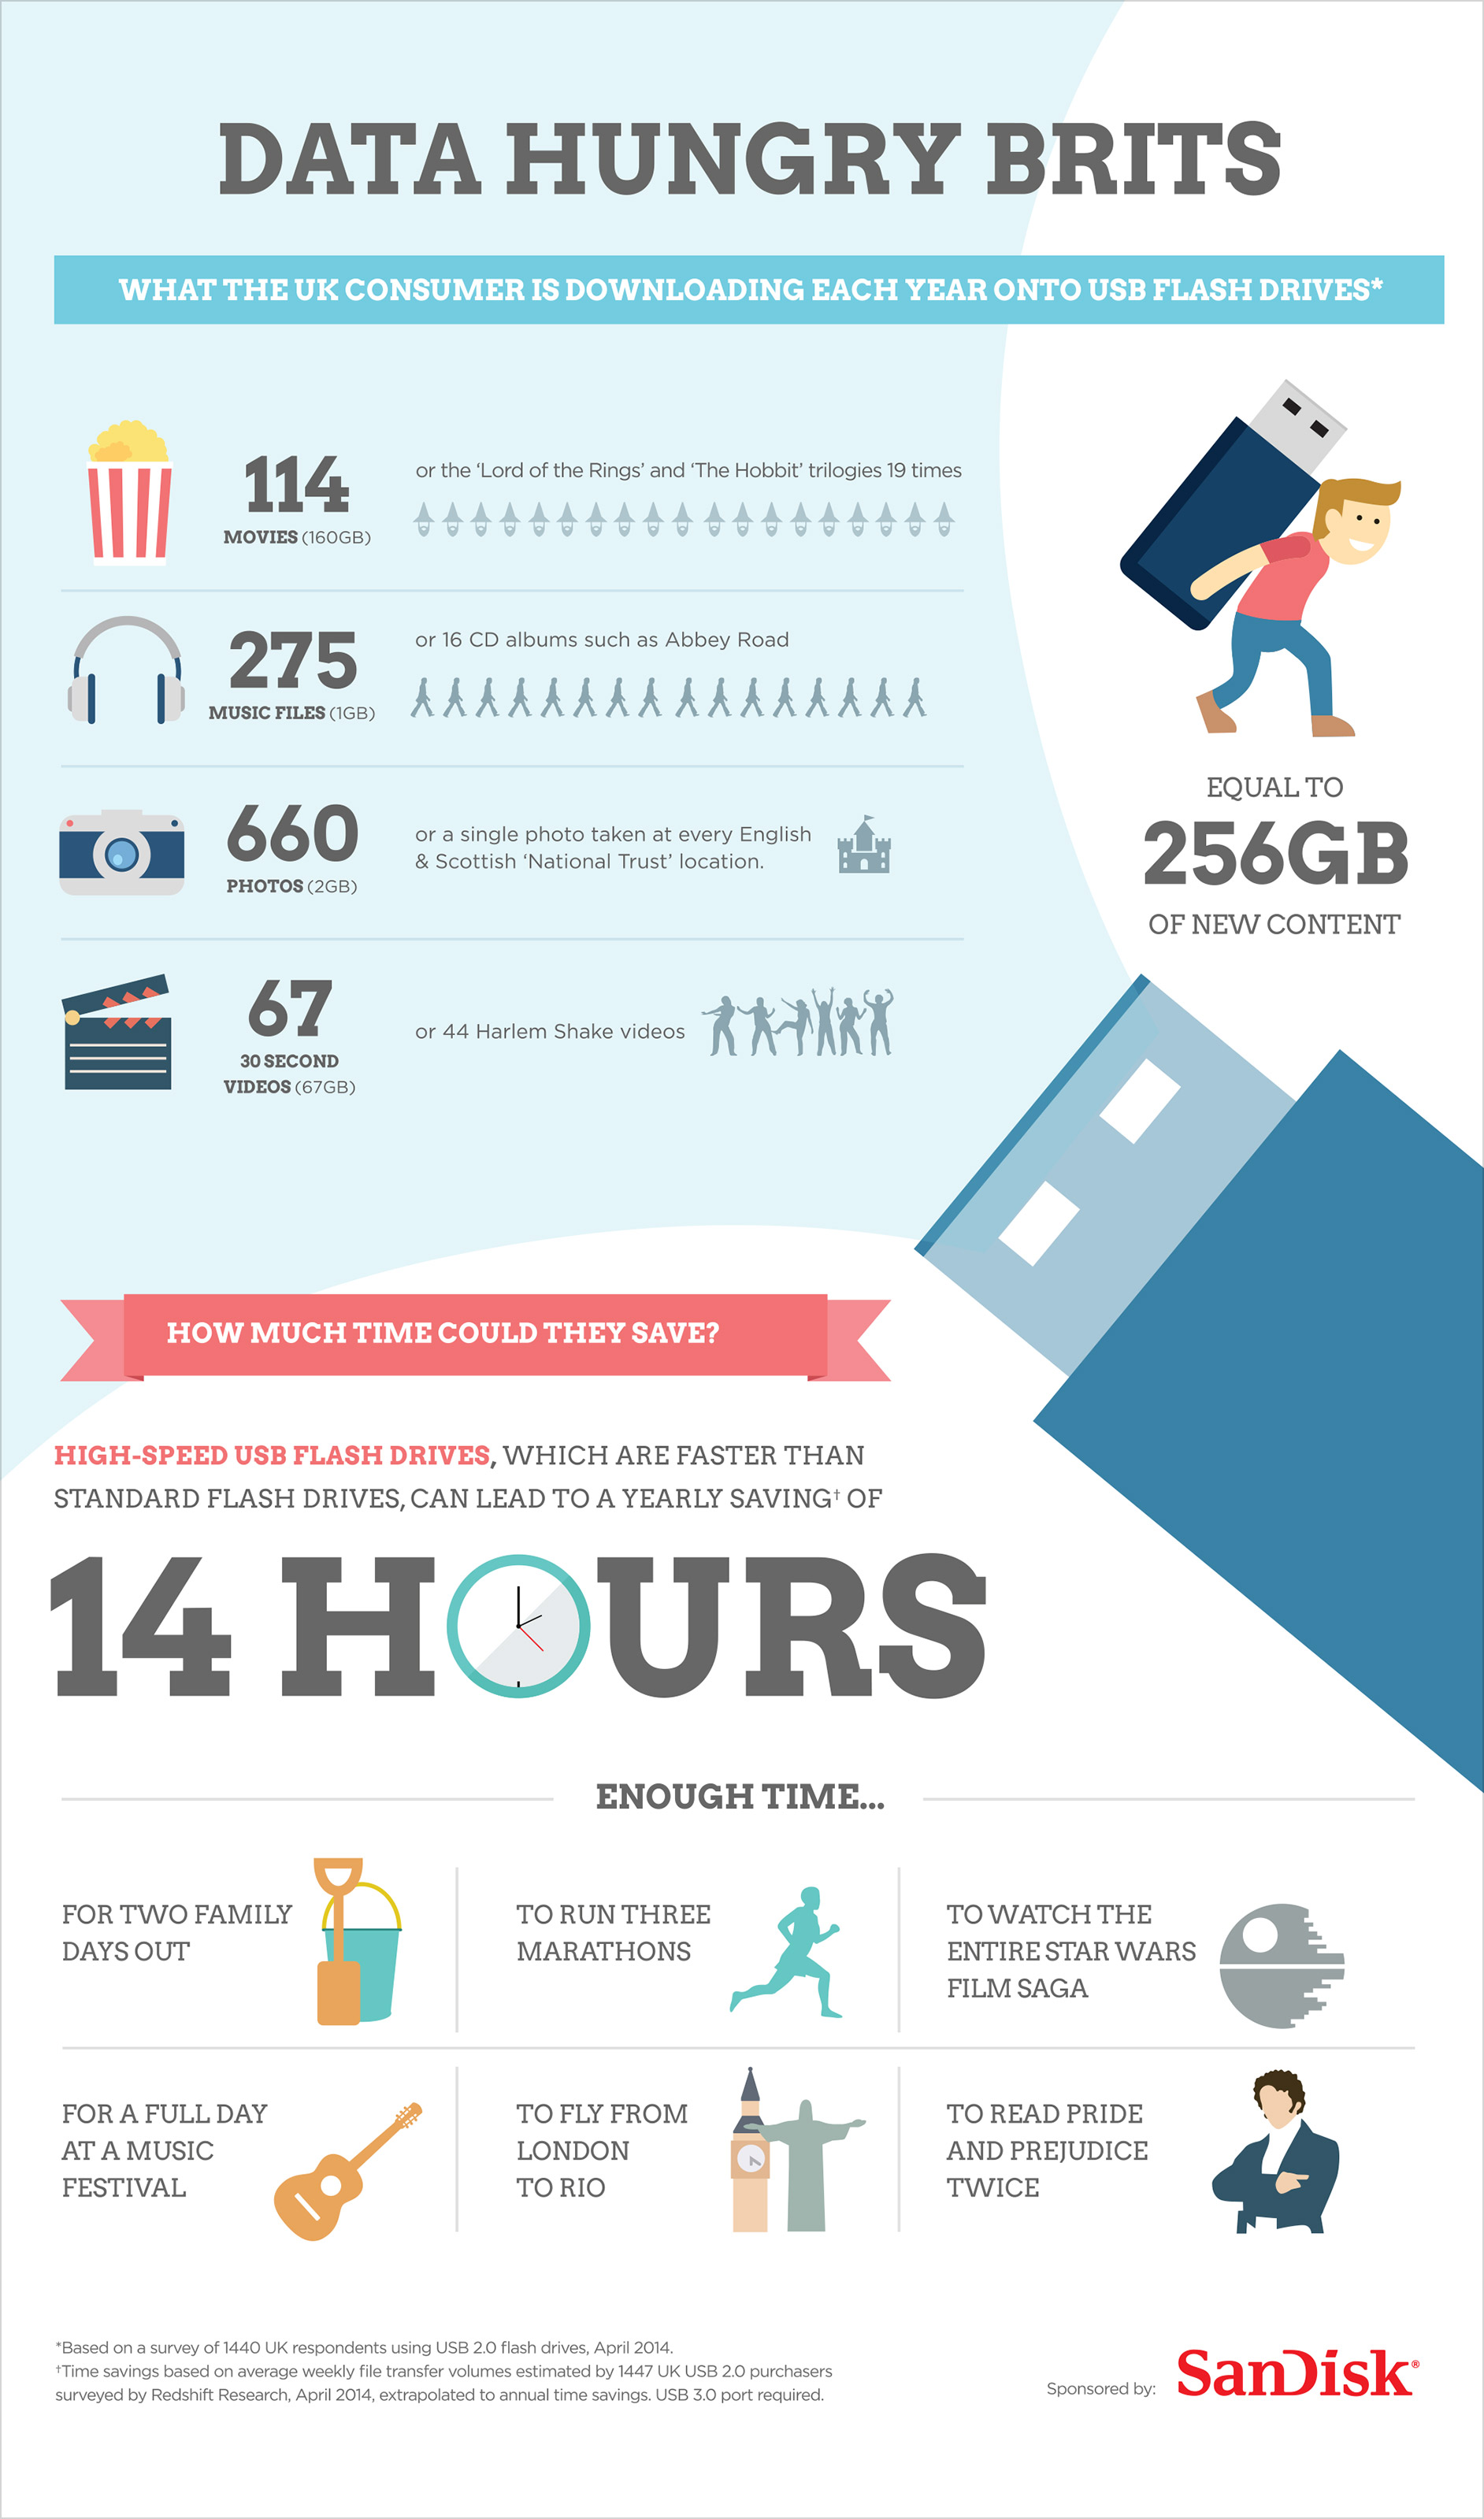 Data hungry brits infographic